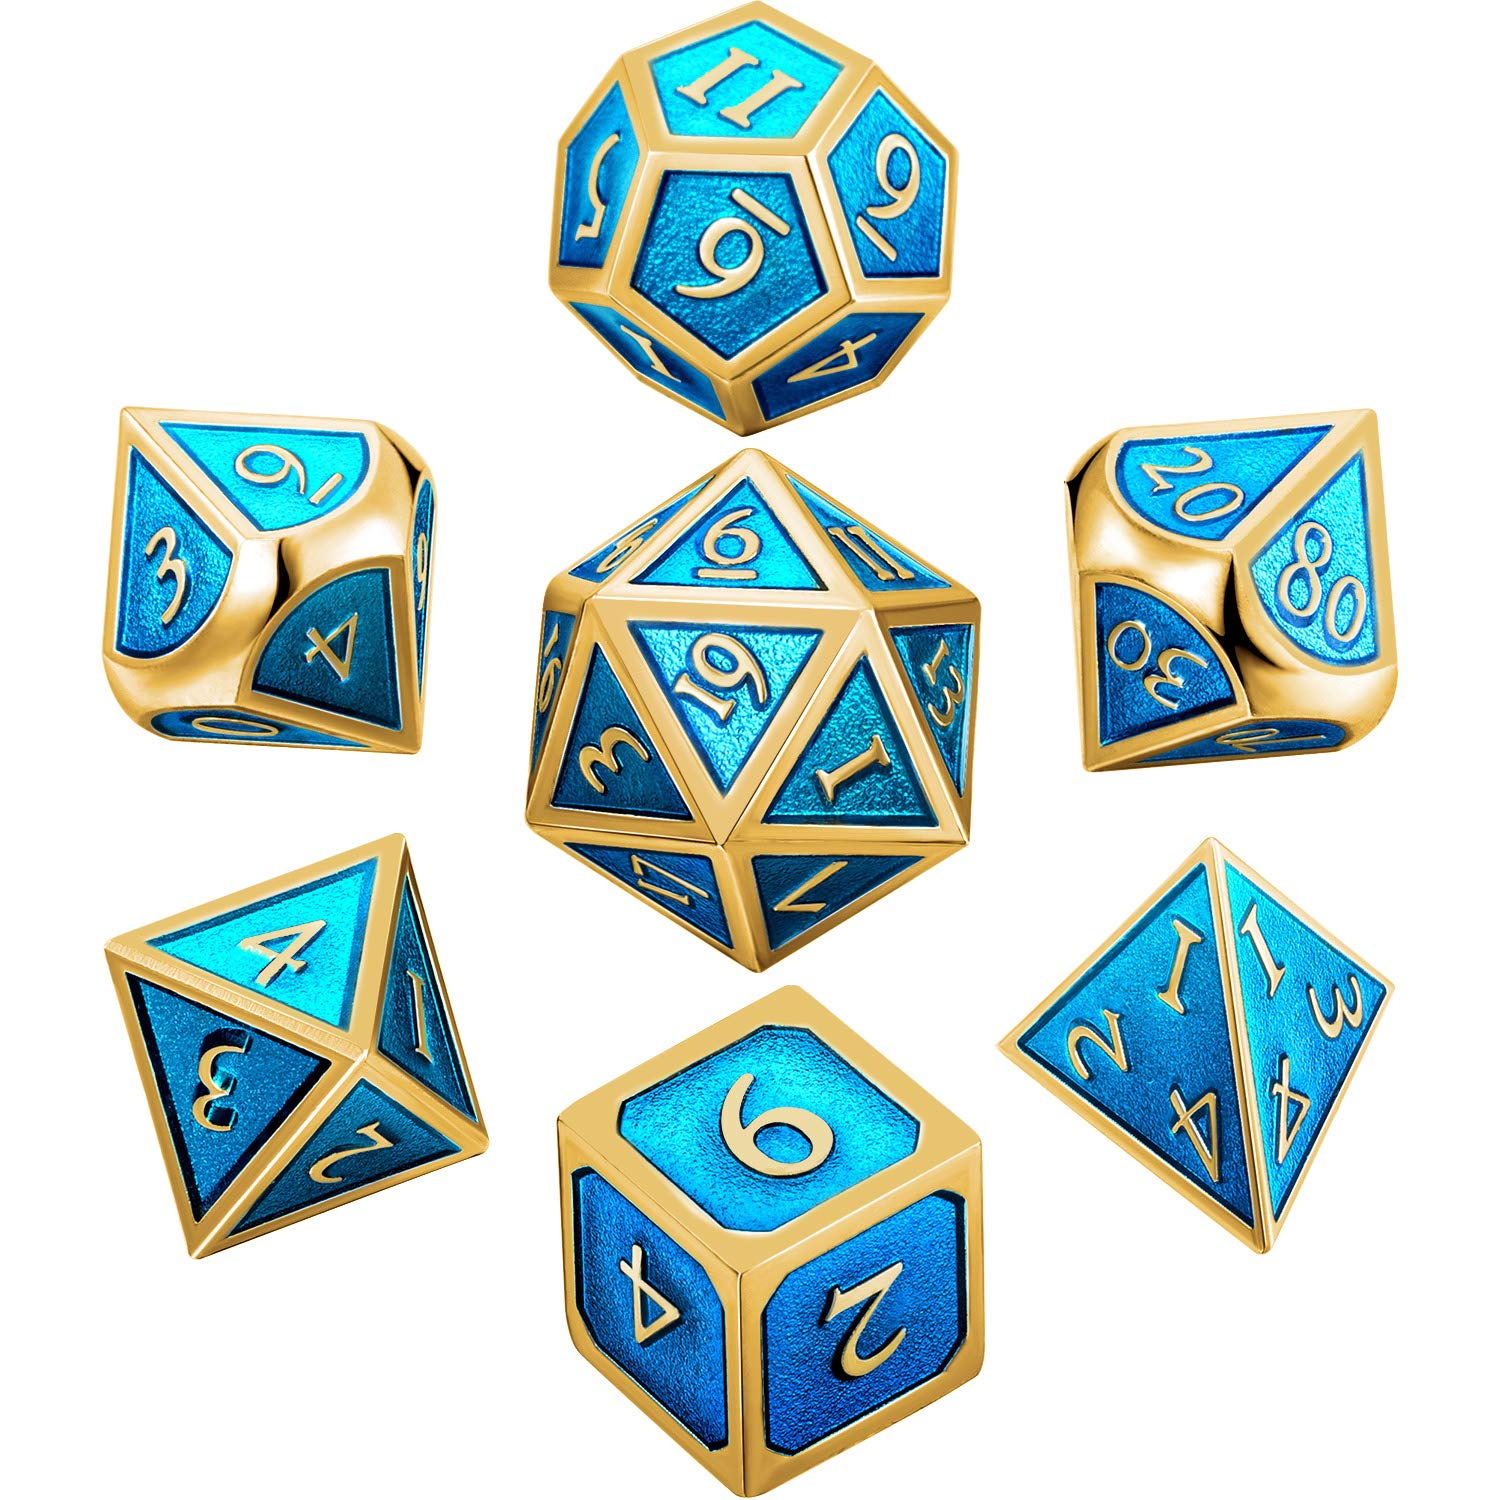 Hestya 7 Pieces Metal Dices Set DND Game Polyhedral Solid Metal D&D Dice Set with Storage Bag and Zinc Alloy with Enamel for Role Playing Game Dungeons and Dragons (Golden Cerulean) by Hestya